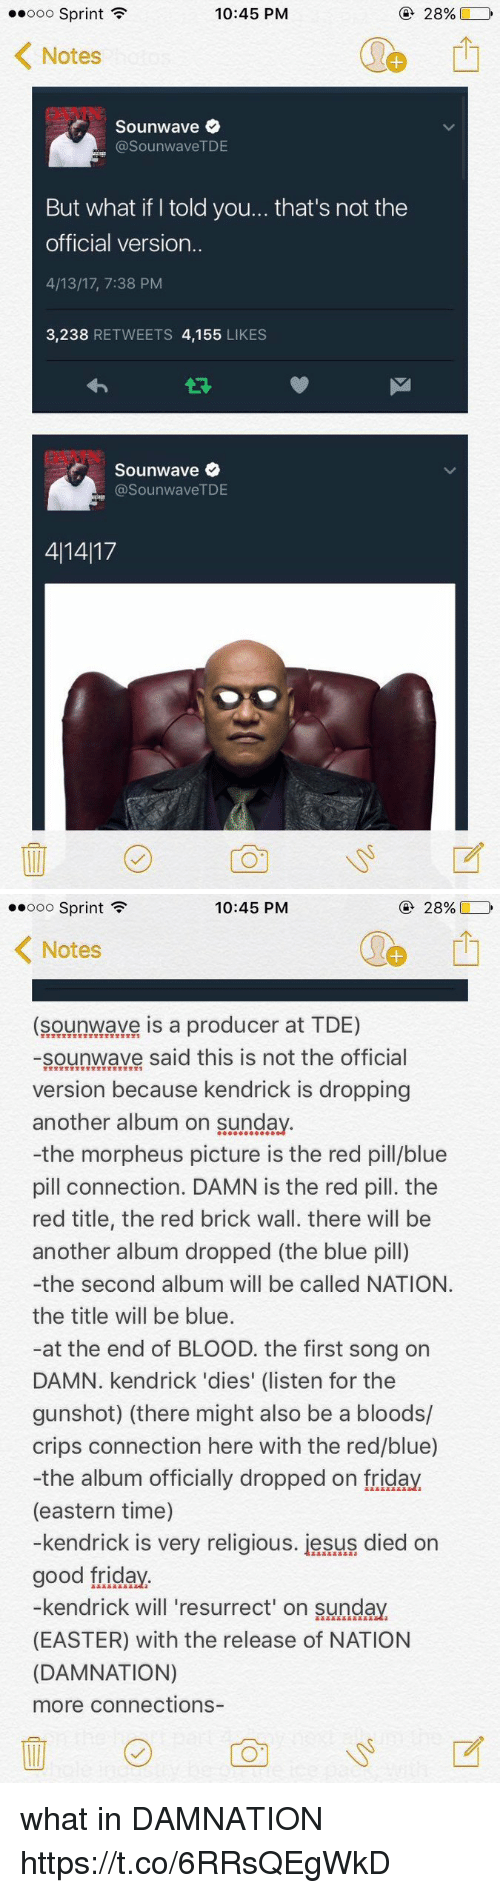 Blue Pill: 10:45 PM  Ooo Sprint  F  28%  Notes  Sounwave  asounwaveTDE  But what if told you... that's not the  official version.  4/13/17, 7:38 PM  3,238  RETWEETS 4,155  LIKES  Sounwave  (a SounwaveTDE  411417   10:45 PM  28%,  Ooo Sprint  F  K Notes  (sounwave is a producer at TDE)  sounwave said this is not the official  version because kendrick is dropping  another album on Sunday  -the morpheus picture is the red pill/blue  pill connection. DAMN is the red pill. the  red title, the red brick wall. there will be  another album dropped (the blue pill)  -the second album will be called NATION.  the title will be blue.  at the end of BLOOD. the first song on  DAMN. kendrick 'dies' (listen for the  gunshot) (there might also be a bloods/  crips connection here with the red/blue)  -the album officially dropped on friday  (eastern time)  -kendrick is very religious. iesus died on  good friday  kendrick will resurrect on Sunday.  (EASTER) with the release of NATION  (DAMNATION)  more connections what in DAMNATION https://t.co/6RRsQEgWkD